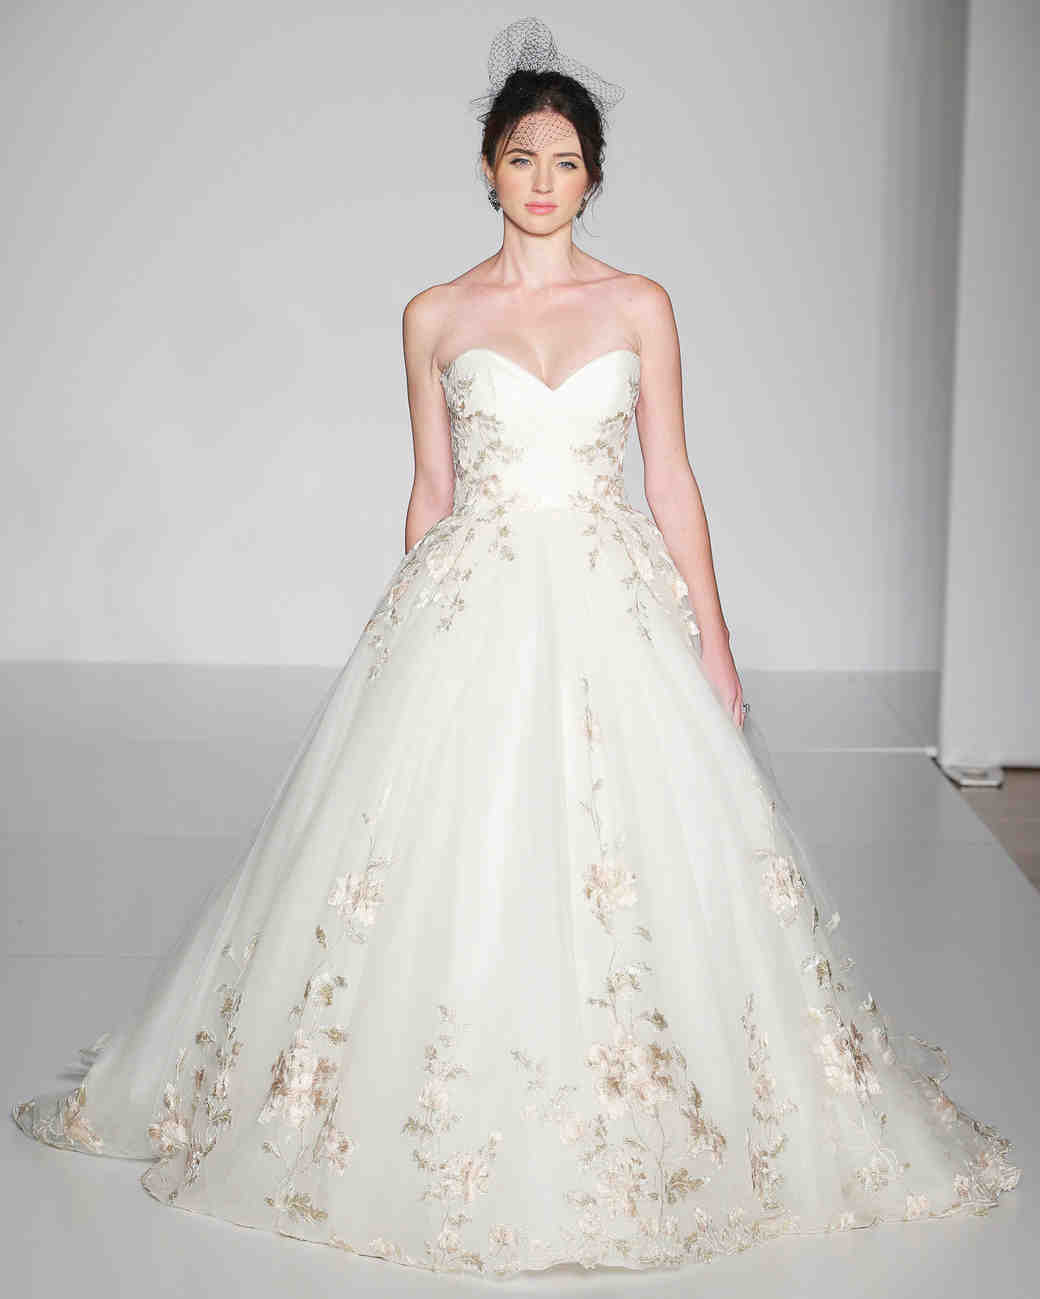 The Timeless Maggie Sottero Bridal Collection For Fall